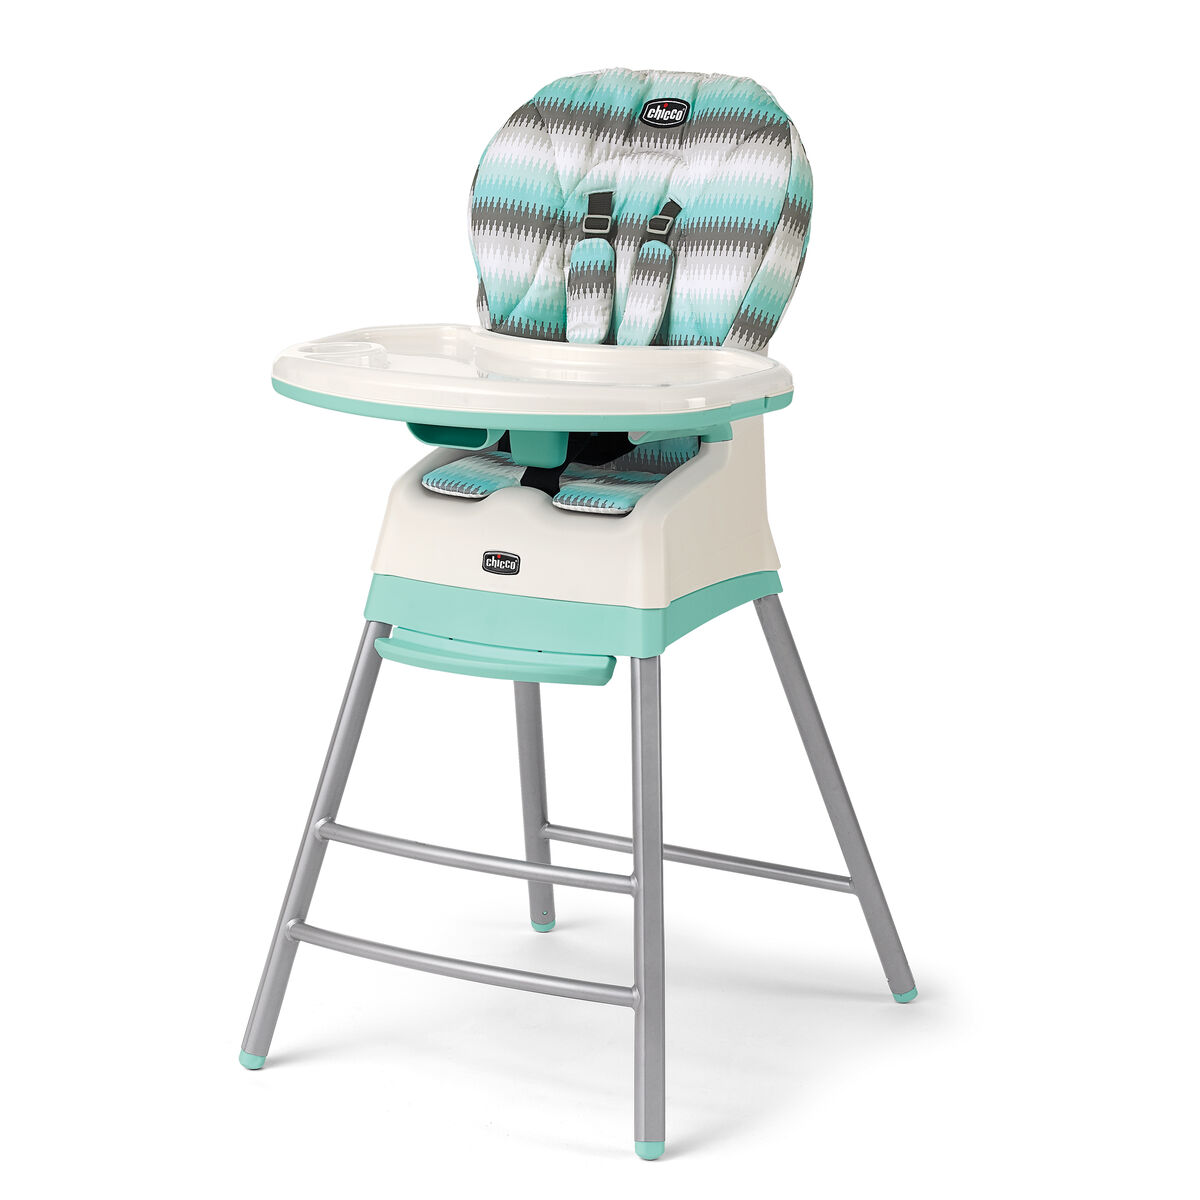 Baby eating chair attached to table - The Only High Chair You Will Ever Need Features 3 Convertible Options That Grows With Your